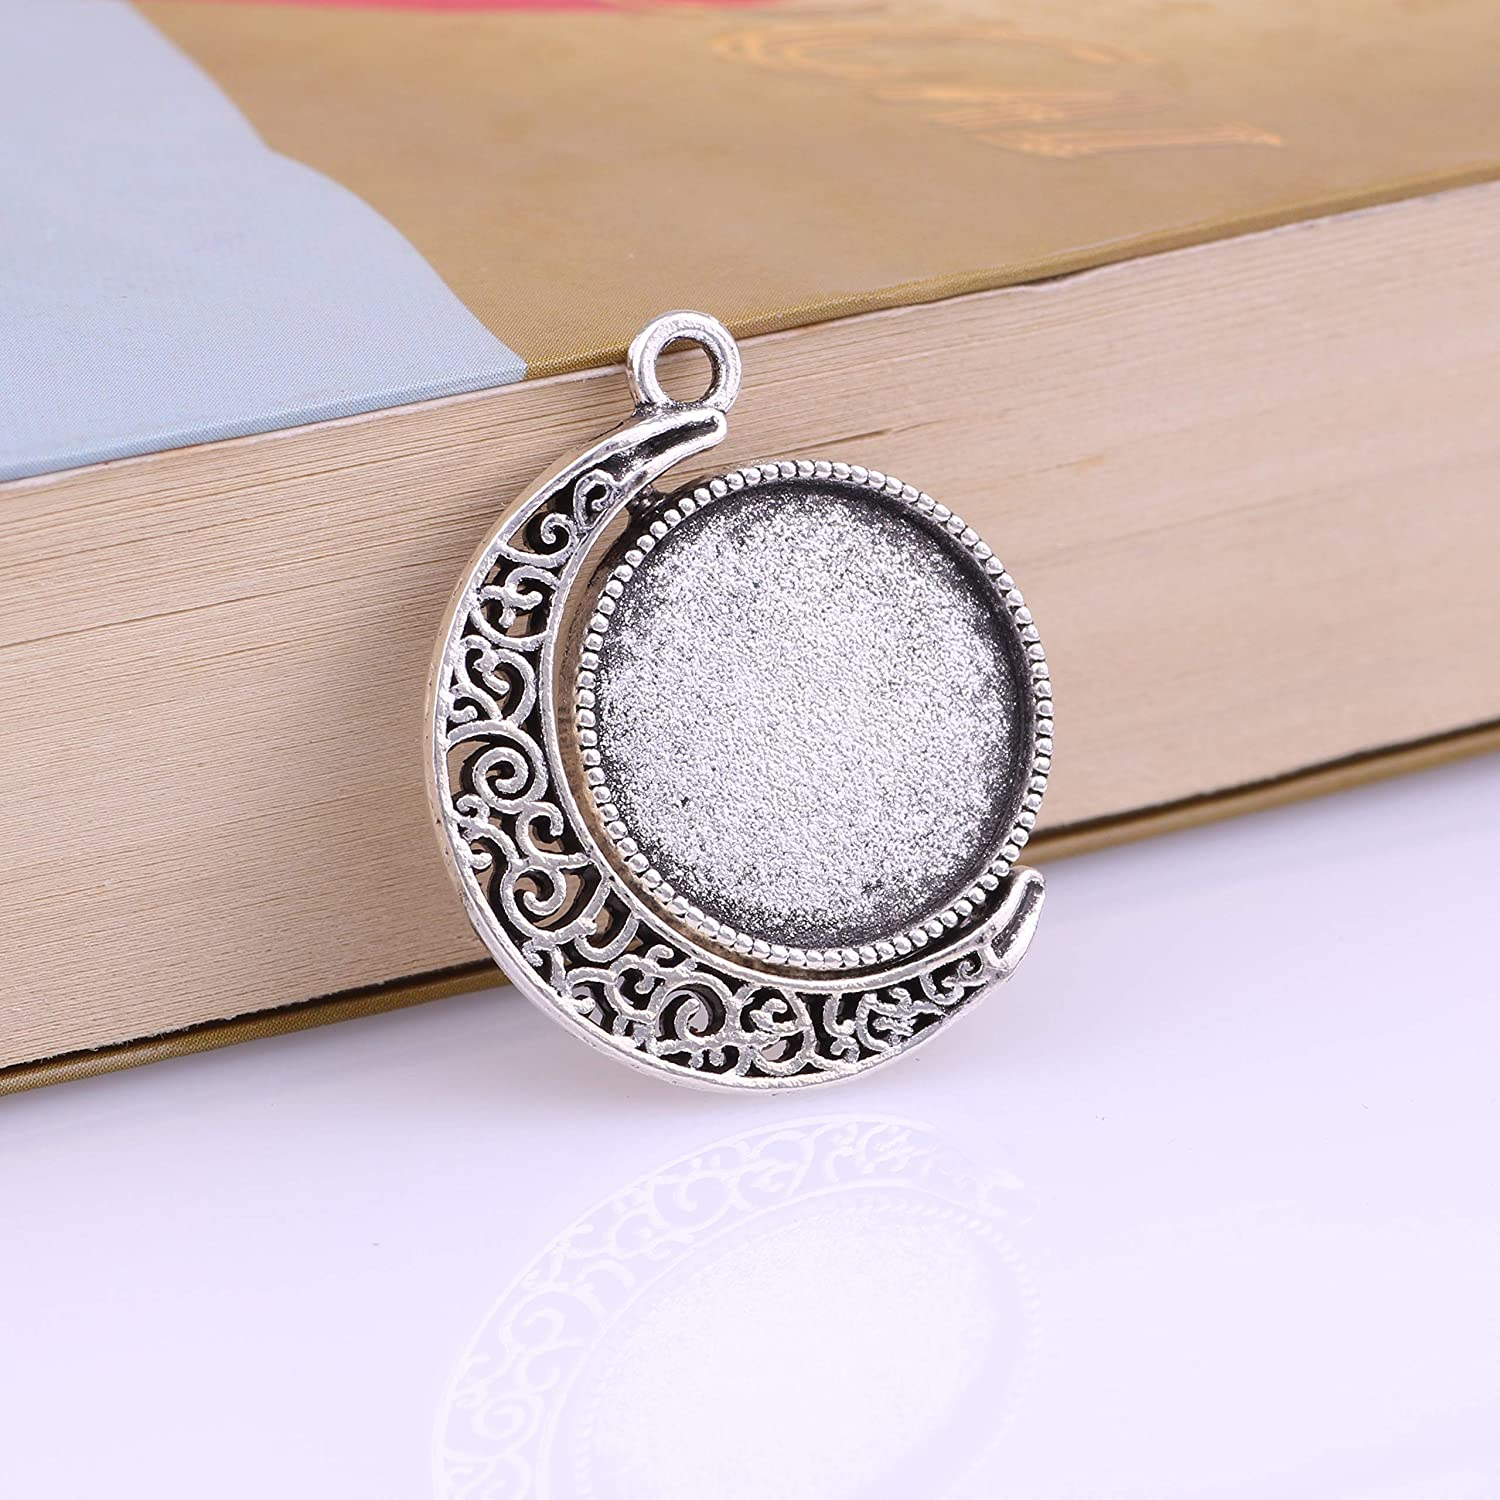 11473-25mm 15pcs 25mm Antique Silver Moon Round Pendant Rotation Trays Cameo Setting Cabochon Dome for Crafting DIY Jewelry Making